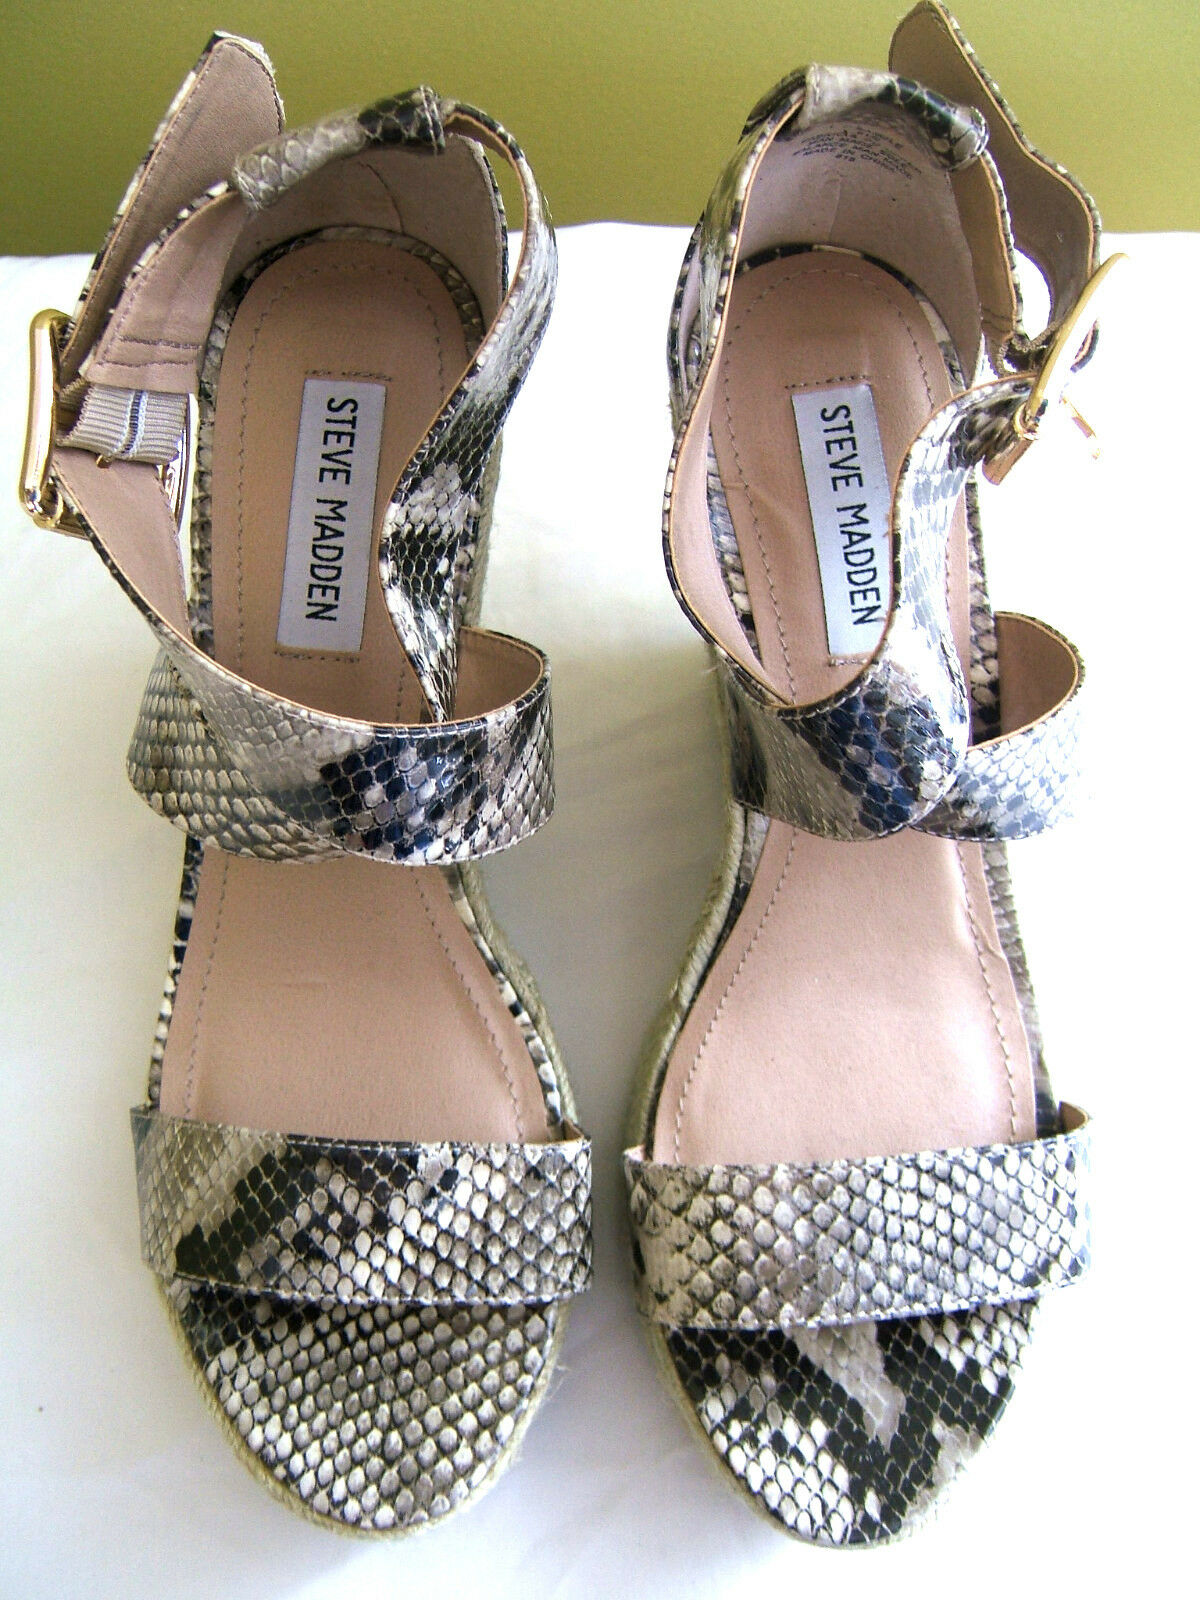 NEW Steve Madden Hot Snakeskin Rope Wedge Platform Sexy Heels Sandals 9.5 M  144